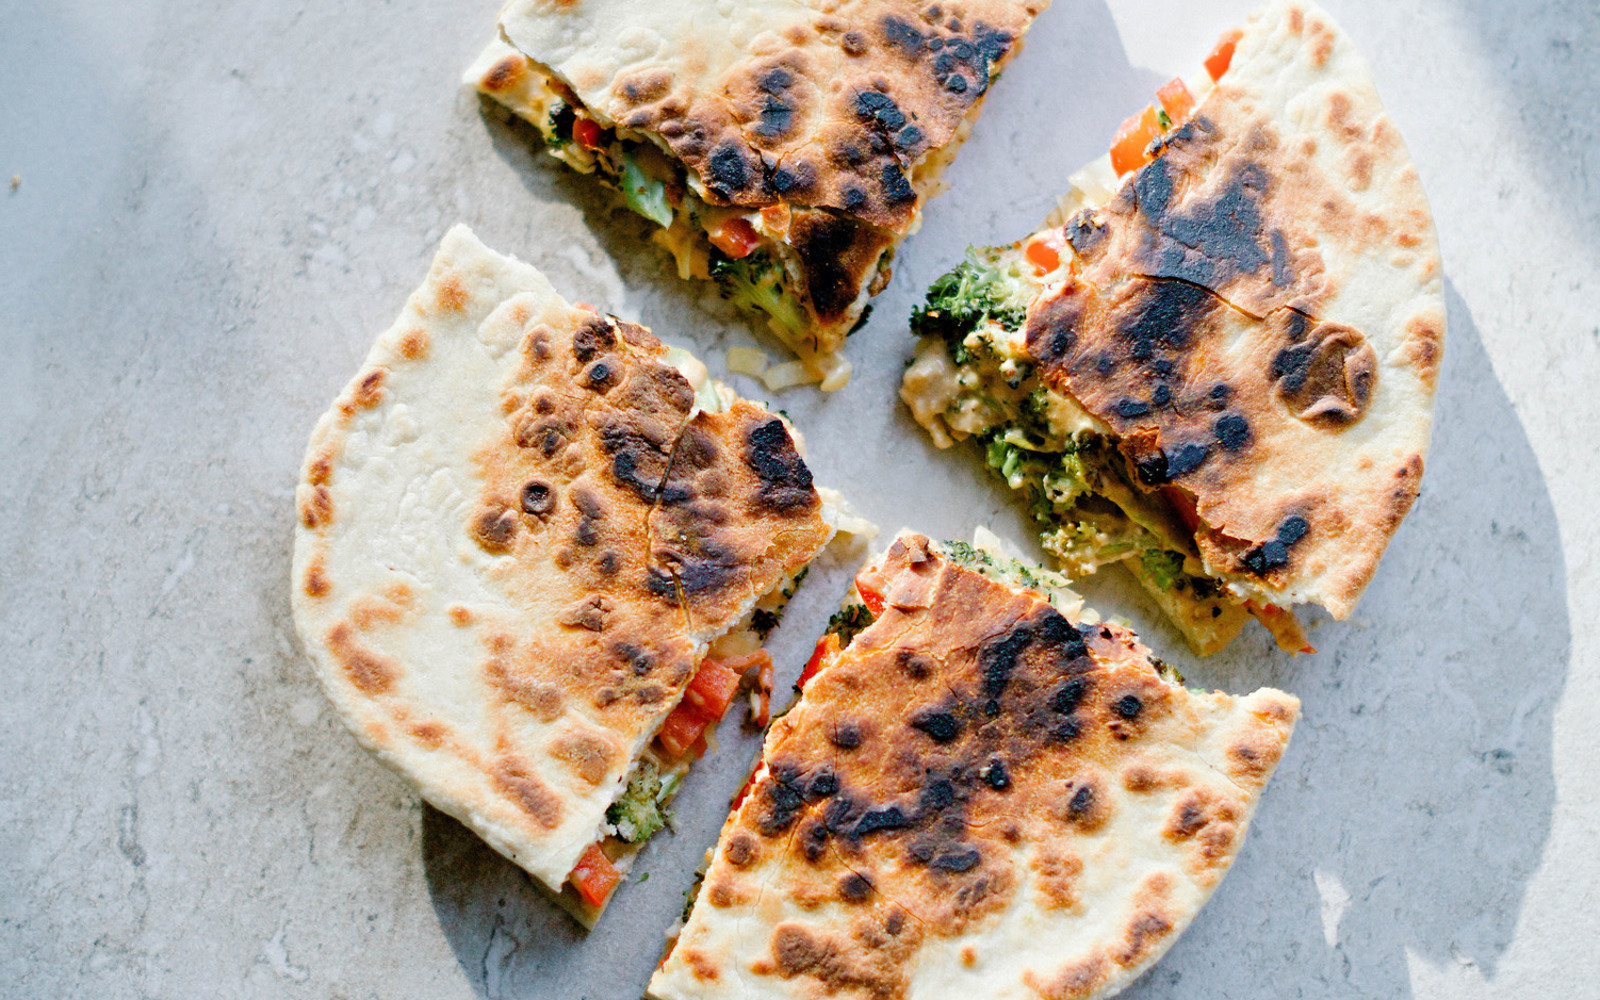 Roasted Broccoli and Sauerkraut Quesadilla [Vegan]